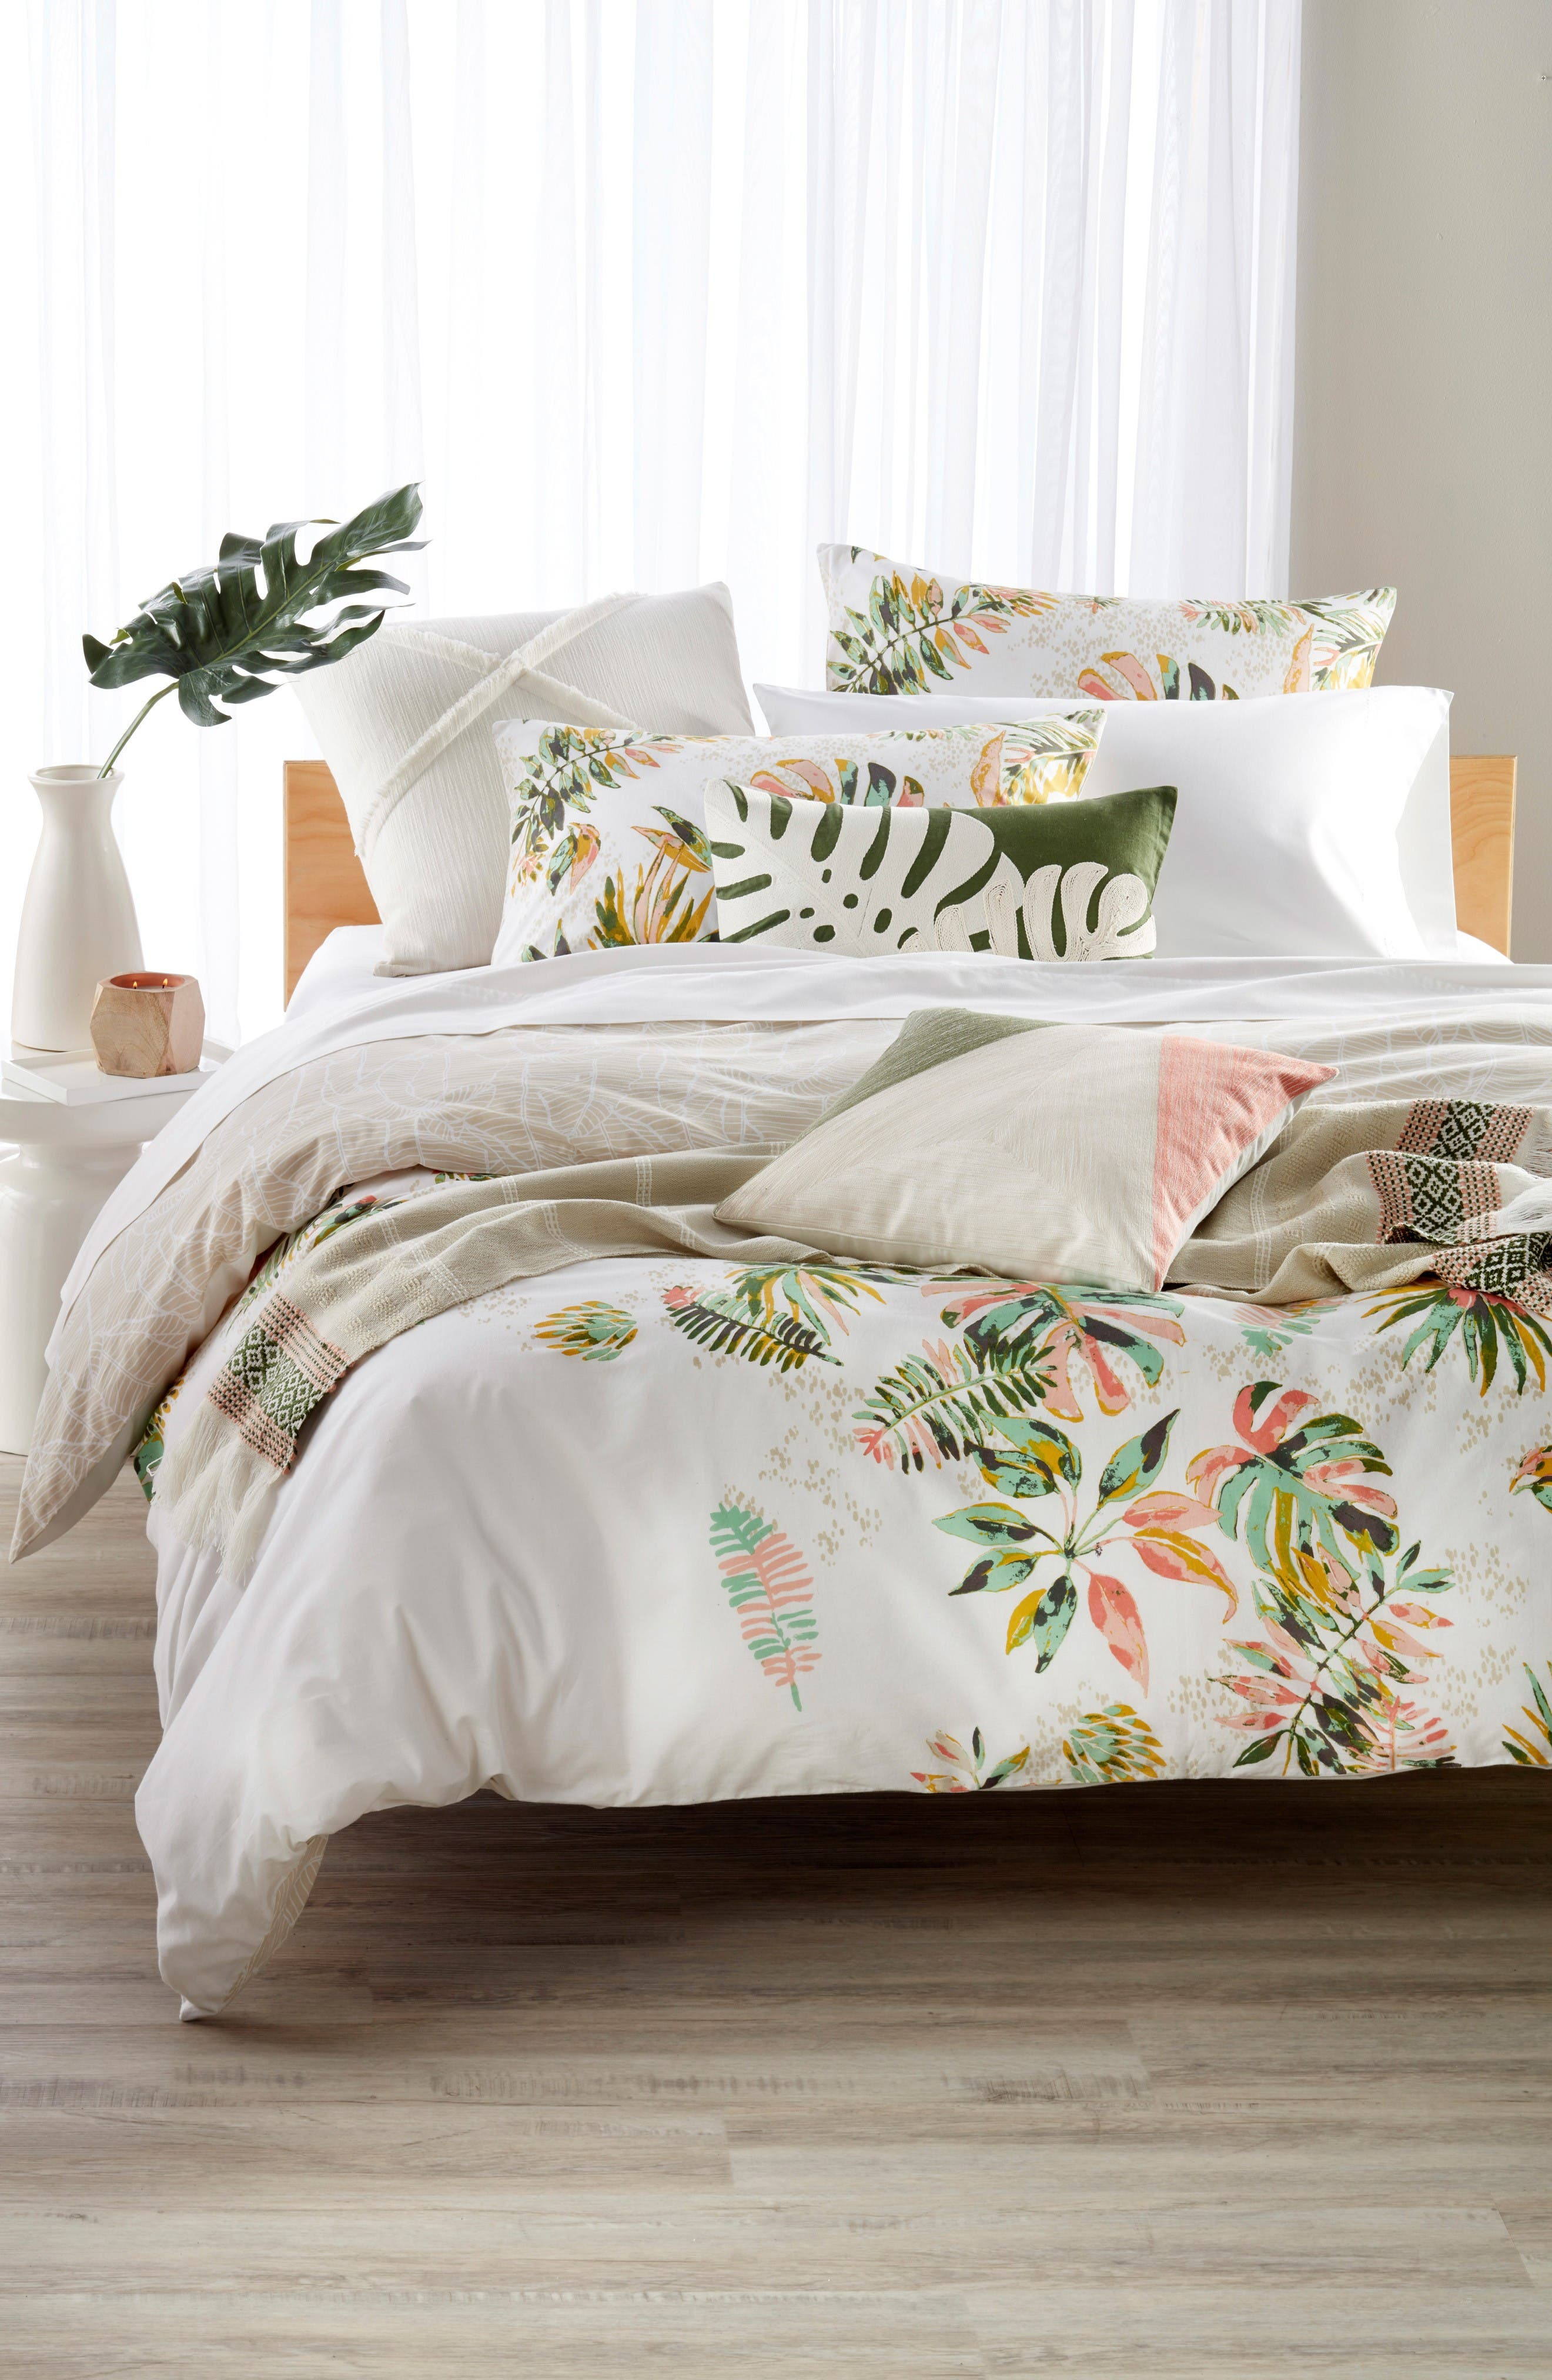 Nordstrom at Home Hilo Bedding Collection